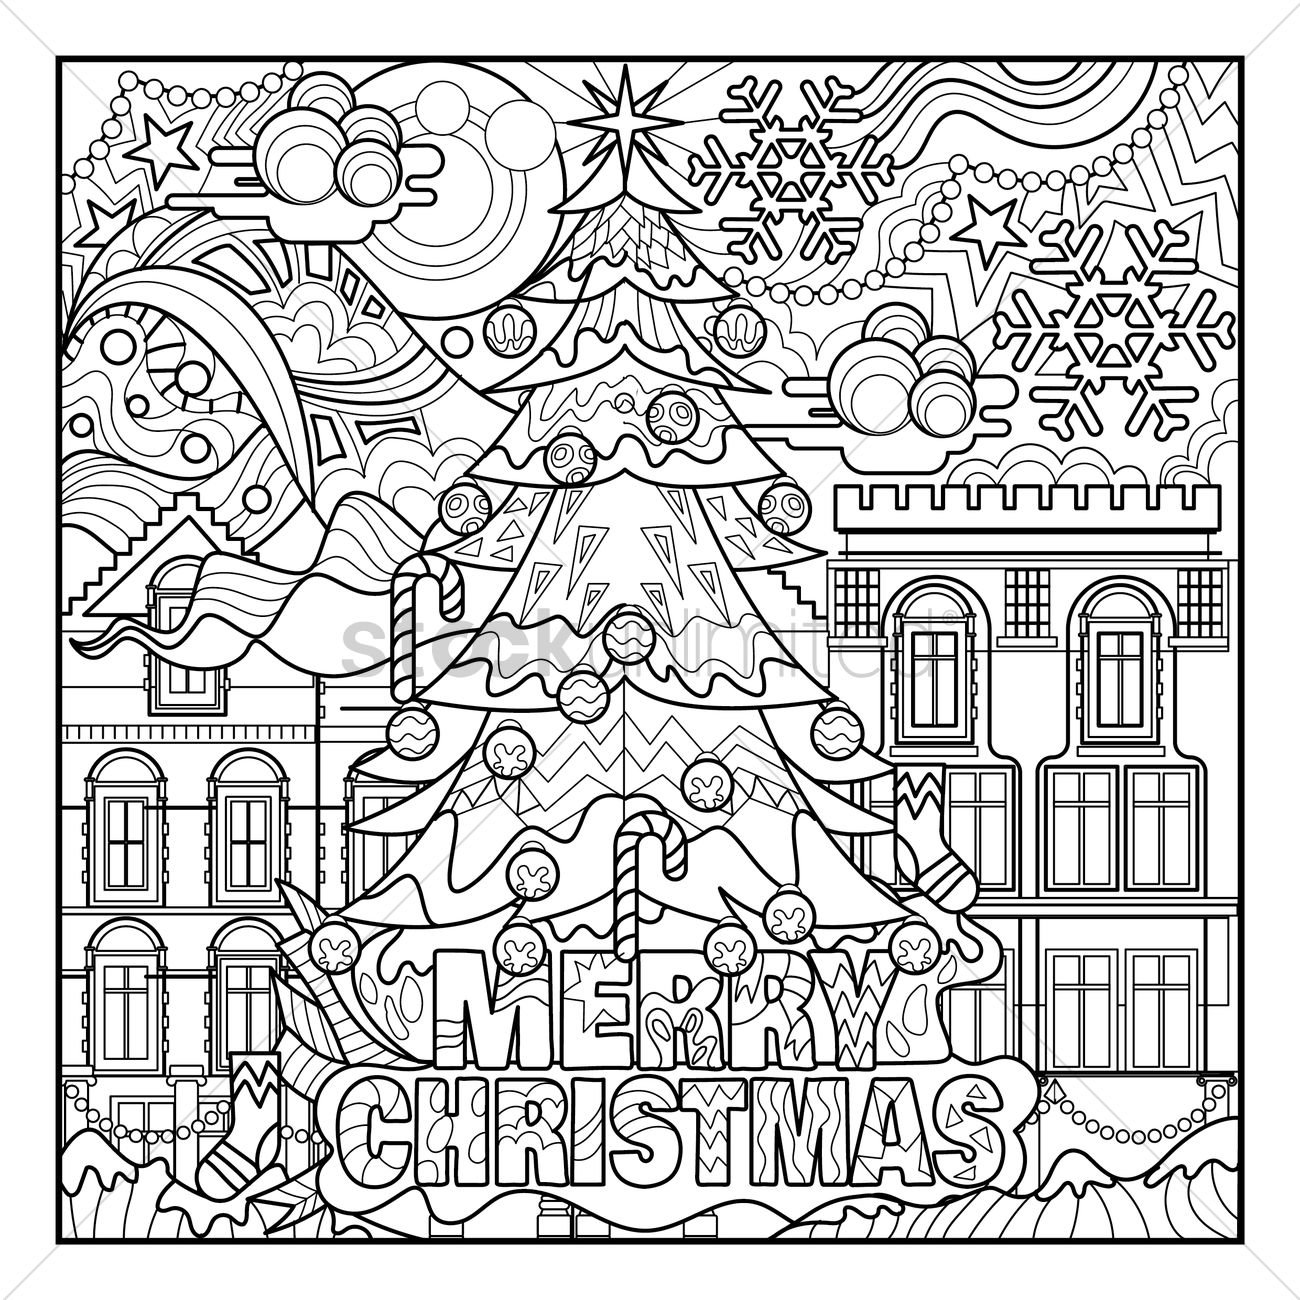 Christmas Coloring Book Vector With Prints Image 2033567 StockUnlimited